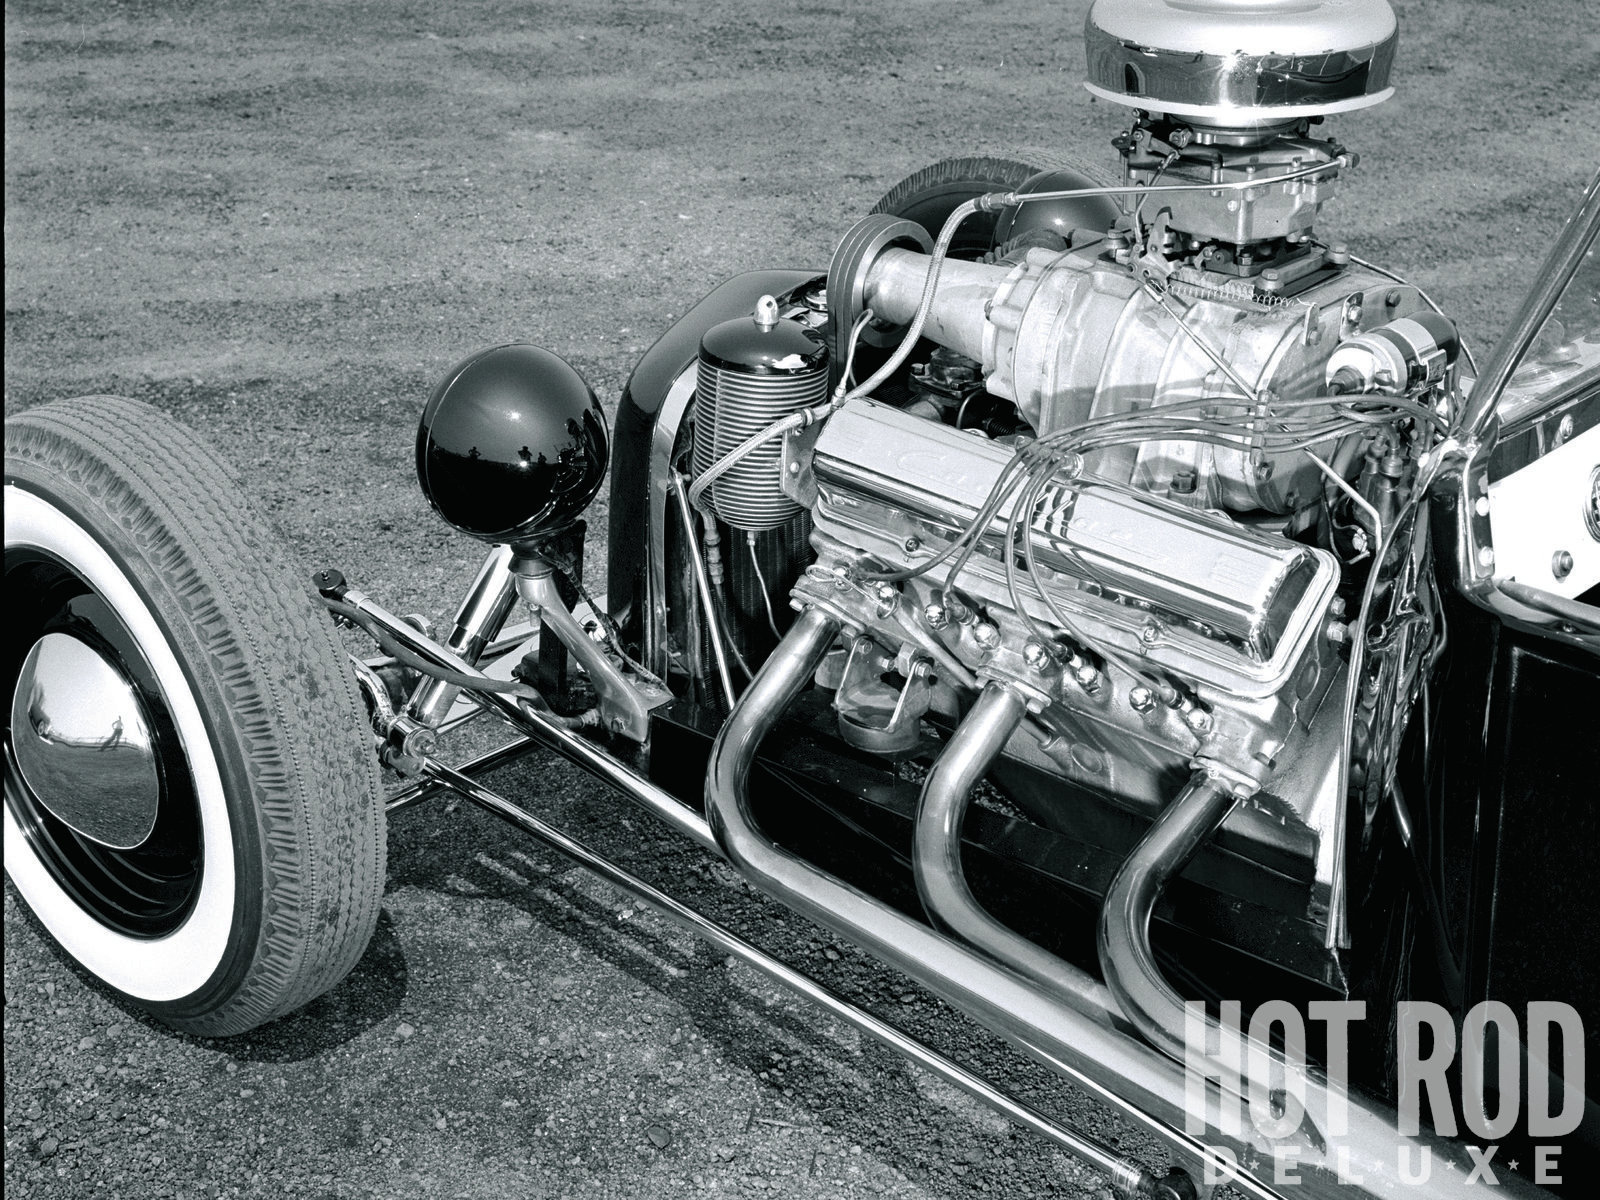 """Internally, the Caddy was left as GM intended, except for aftermarket solid lifters. Studebaker rocker arms were mounted on shortened Cad pushrods to increase valve lift. That's the stock Rochester four-barrel atop the blower and what HRM described as """"a Bandimere special manifold."""""""